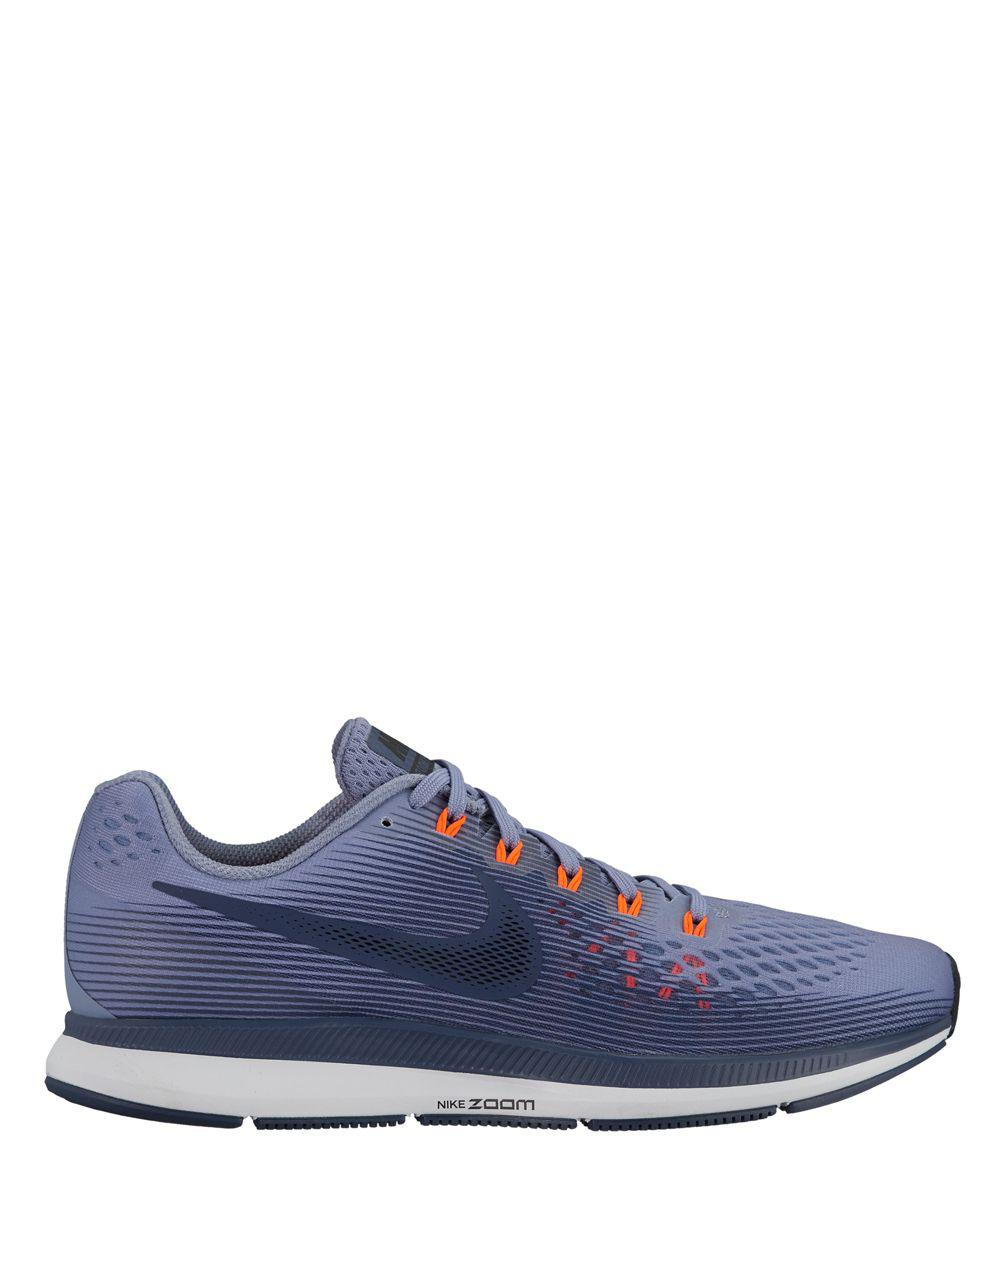 8348c4f246c14 Lyst - Nike Air Zoom Pegasus 34 Running Sneakers in Blue